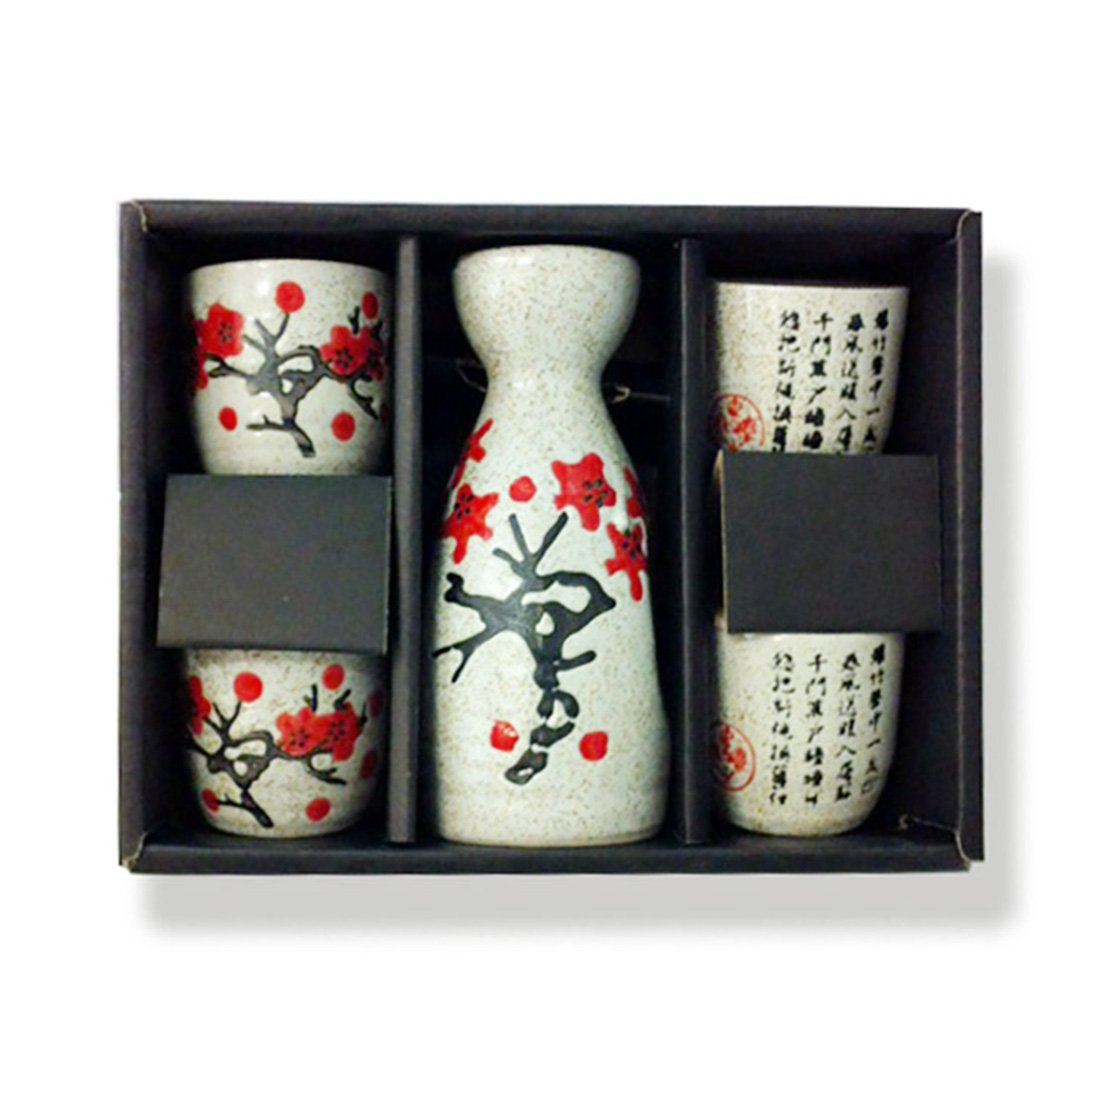 J-SS2-Ceramic Sake Set (1 Bottle & 4 Cups) with Flower & Chinese Poem Design-grey CHINA ELEMENTS